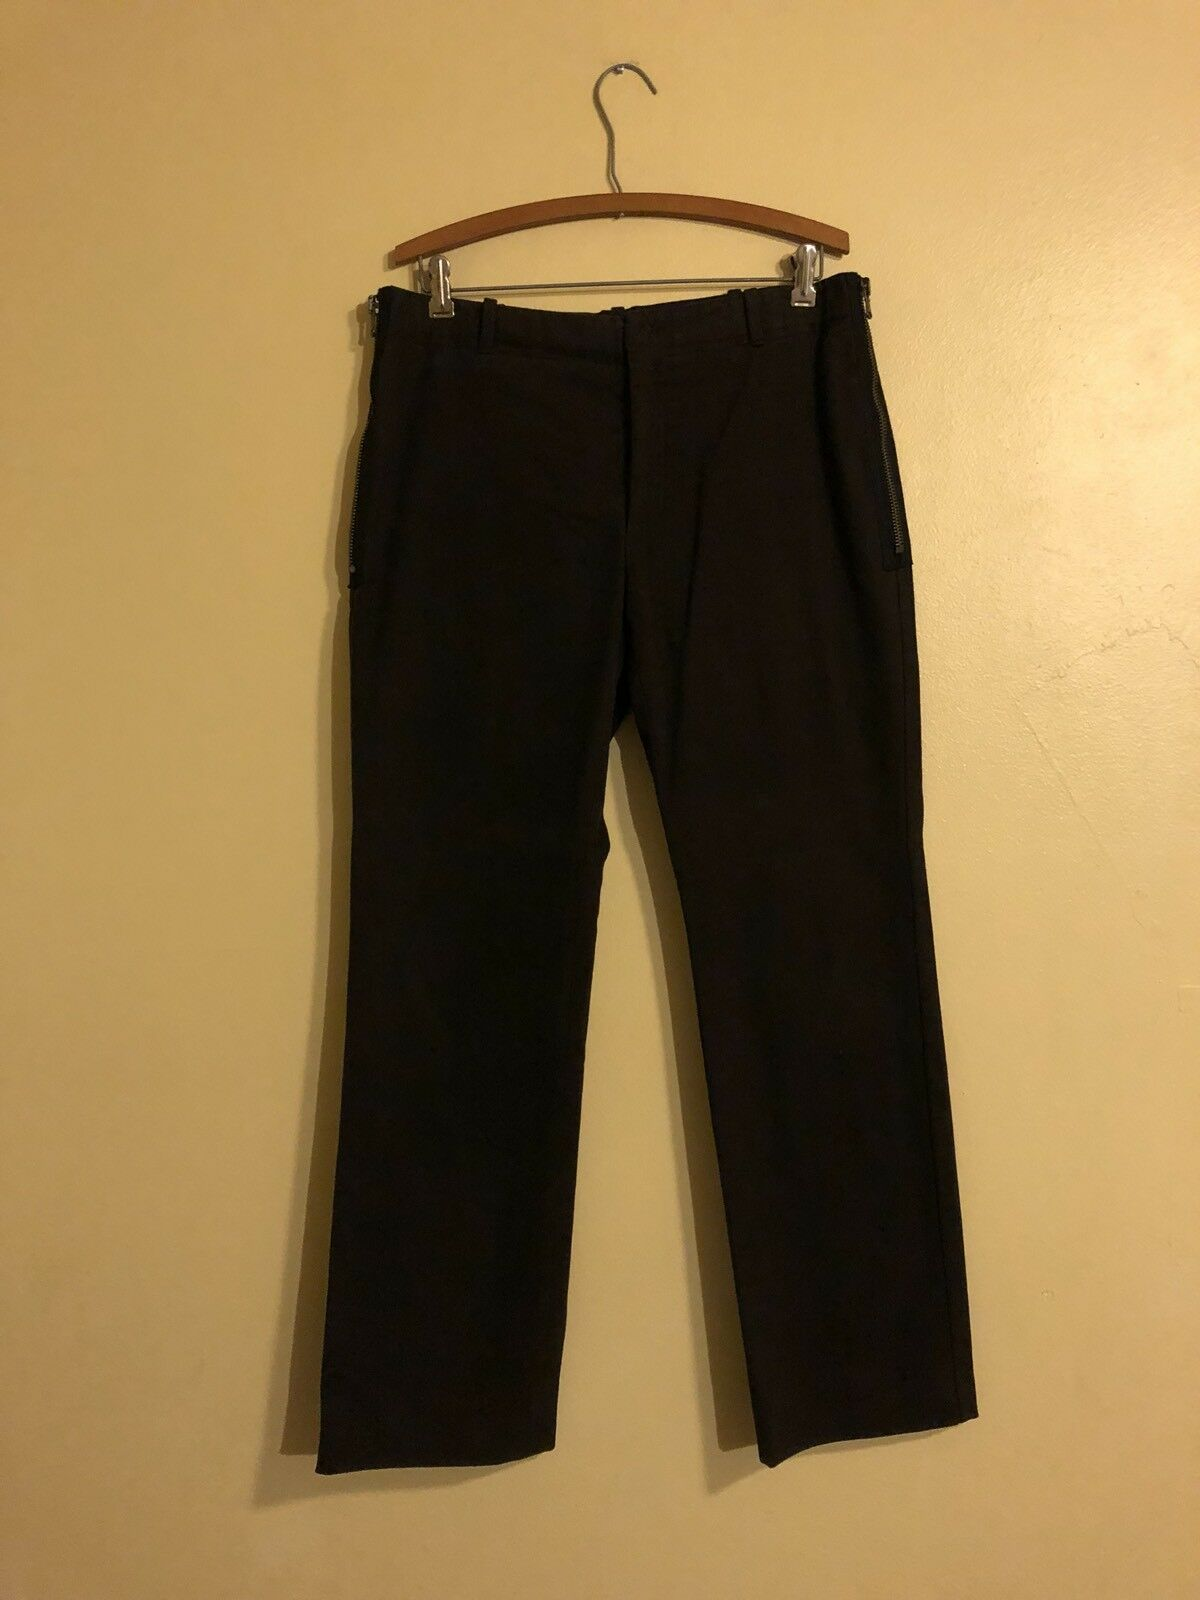 Costume national Side Zipper Pants Size 34 31.5